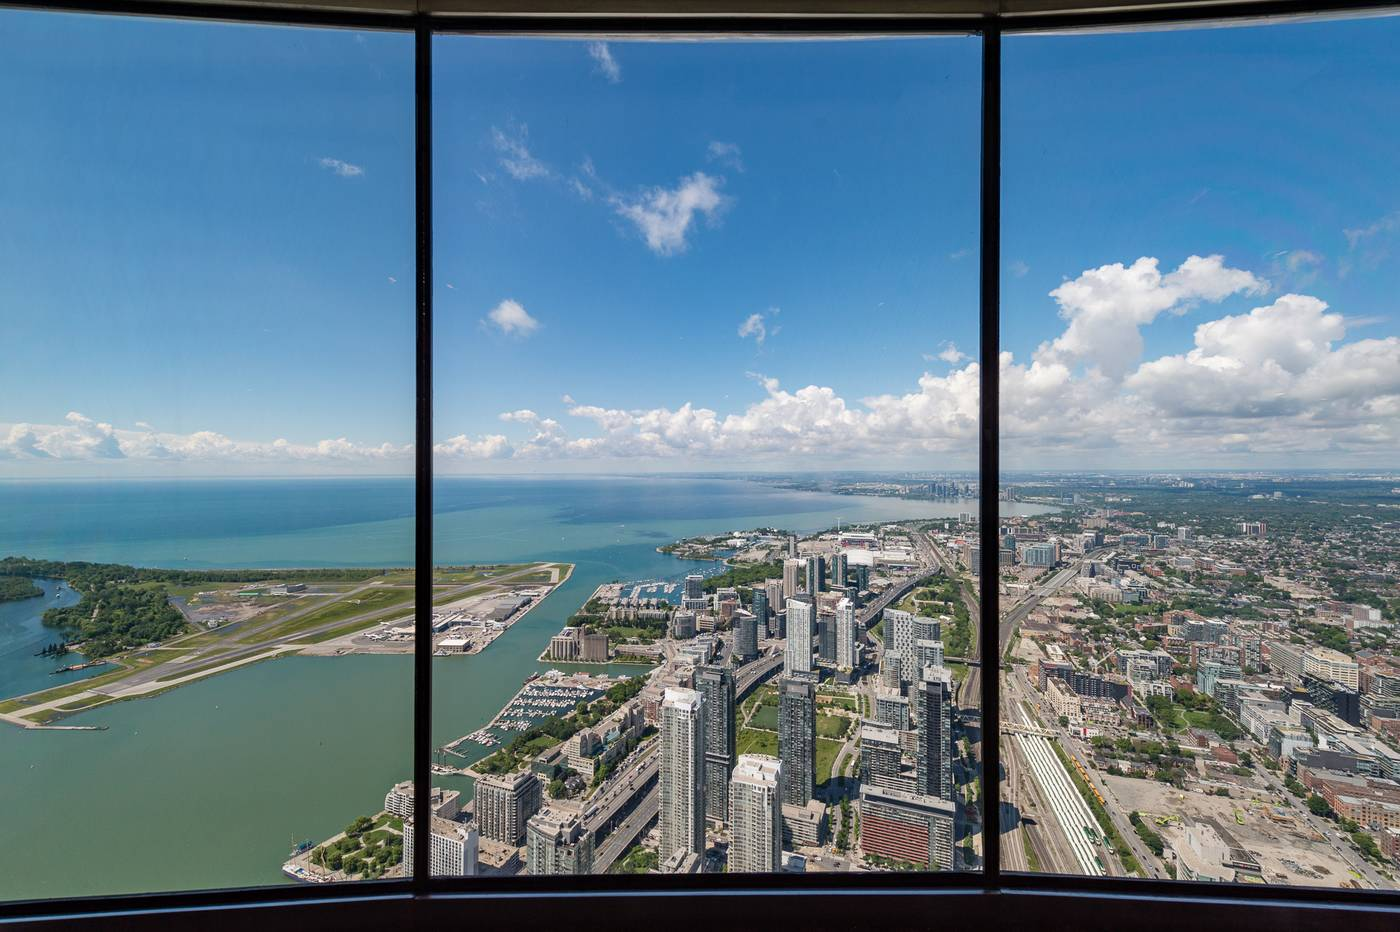 BREATHTAKING VIEWS From Toronto's CN Tower: One of Earth's Tallest Metal Structures